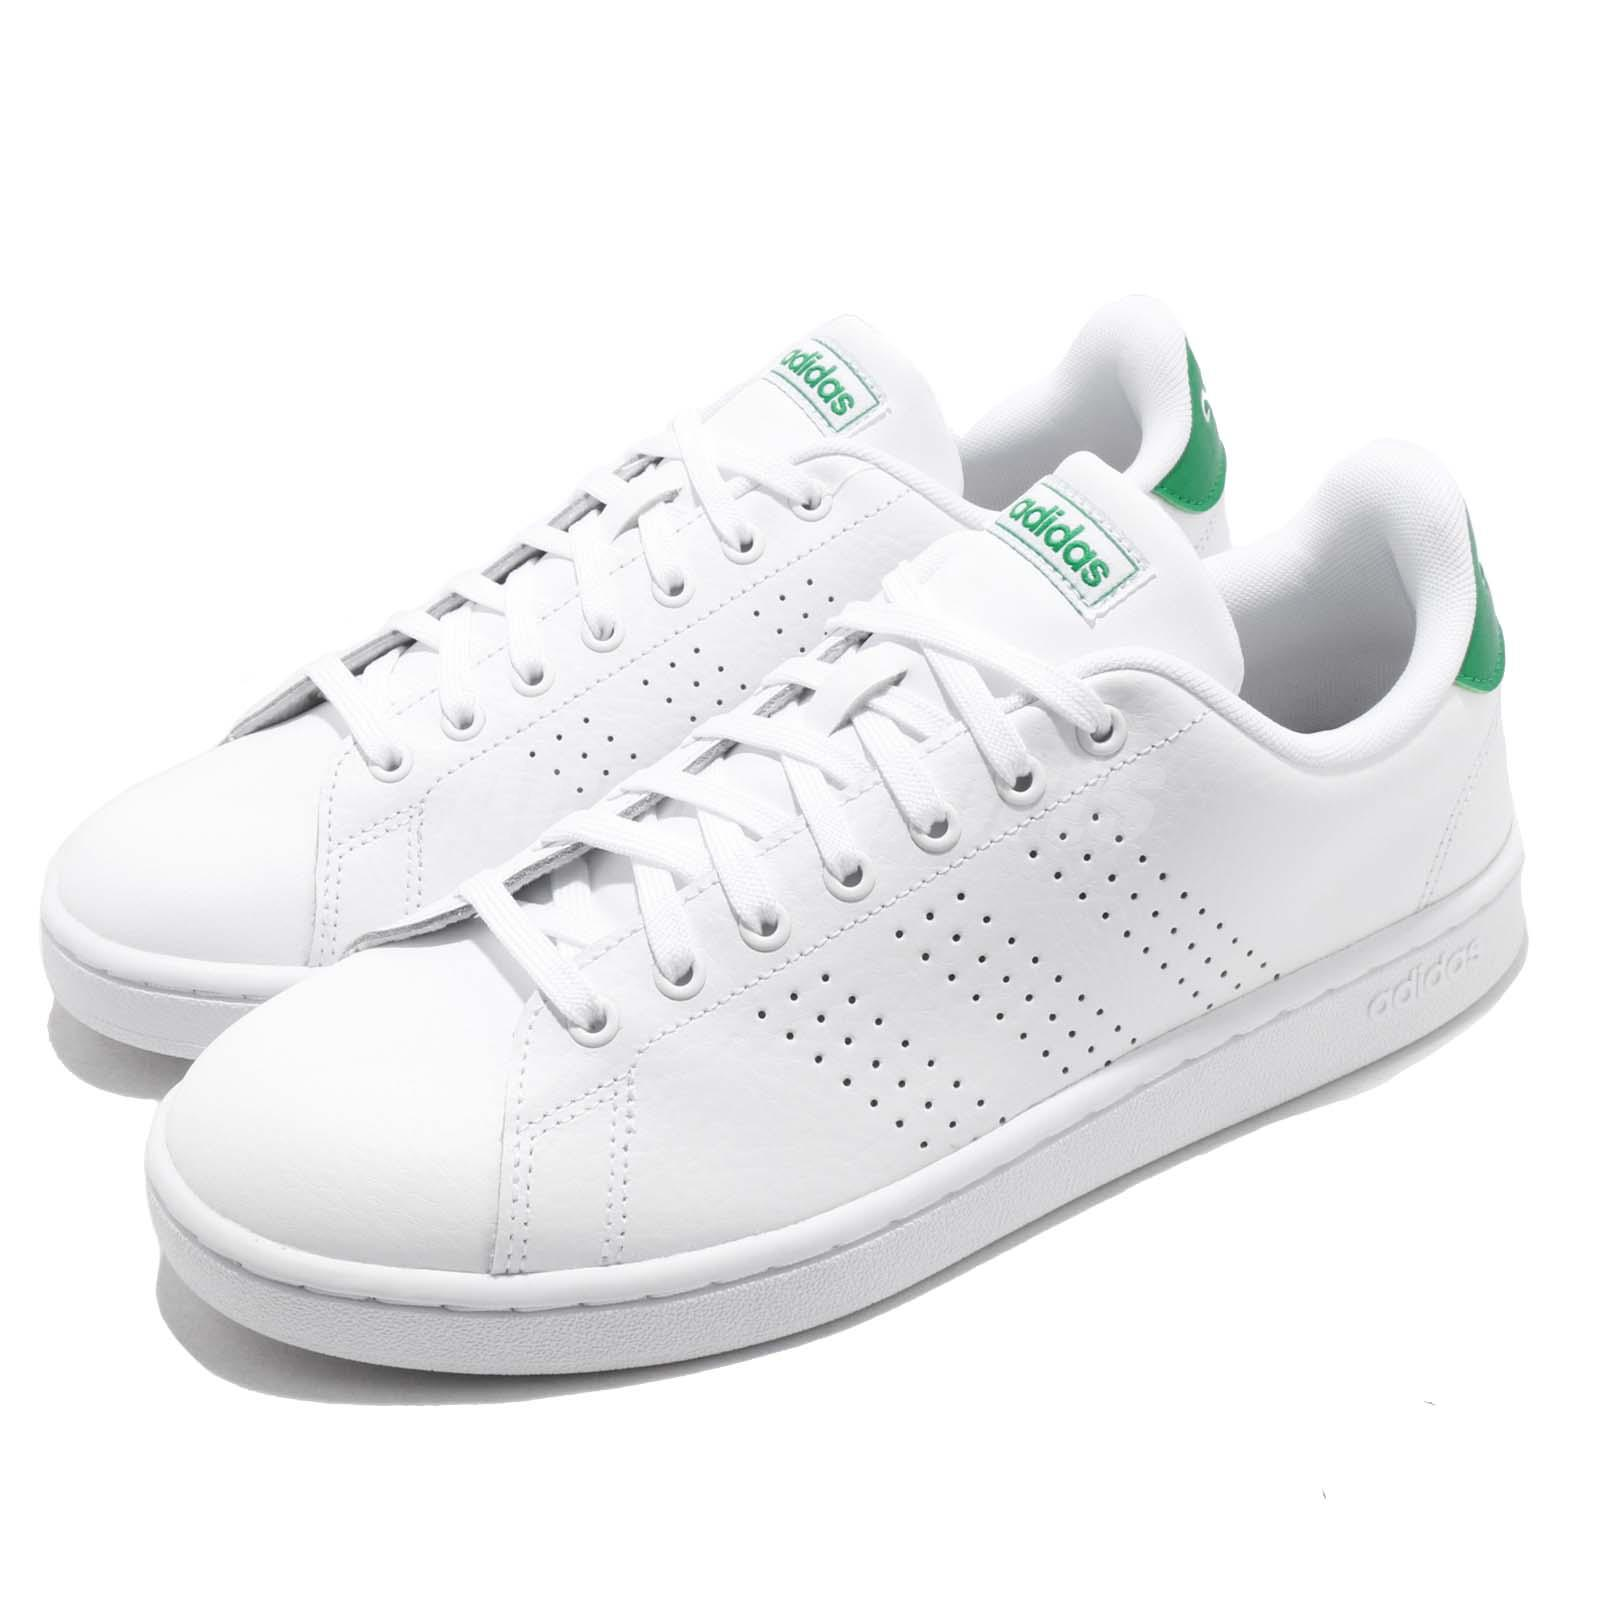 Details about adidas Neo Advantage White Green Men Casual Lifestyle Shoes Sneakers F36424